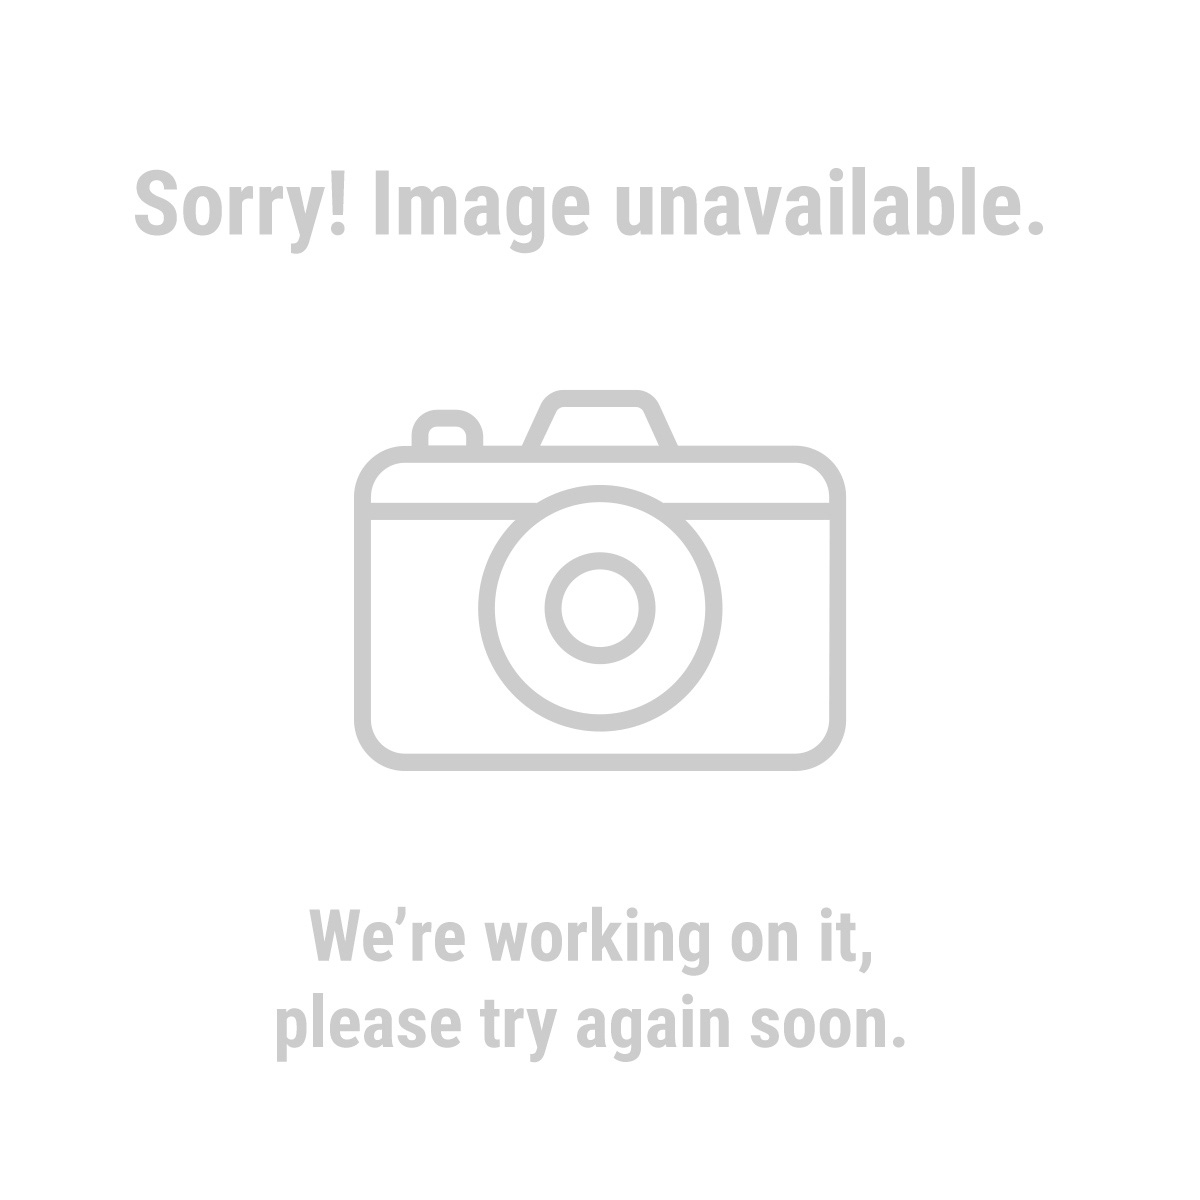 Central Pneumatic 97857 3X Air Riveting Hammer With 5 Piece Punch Set